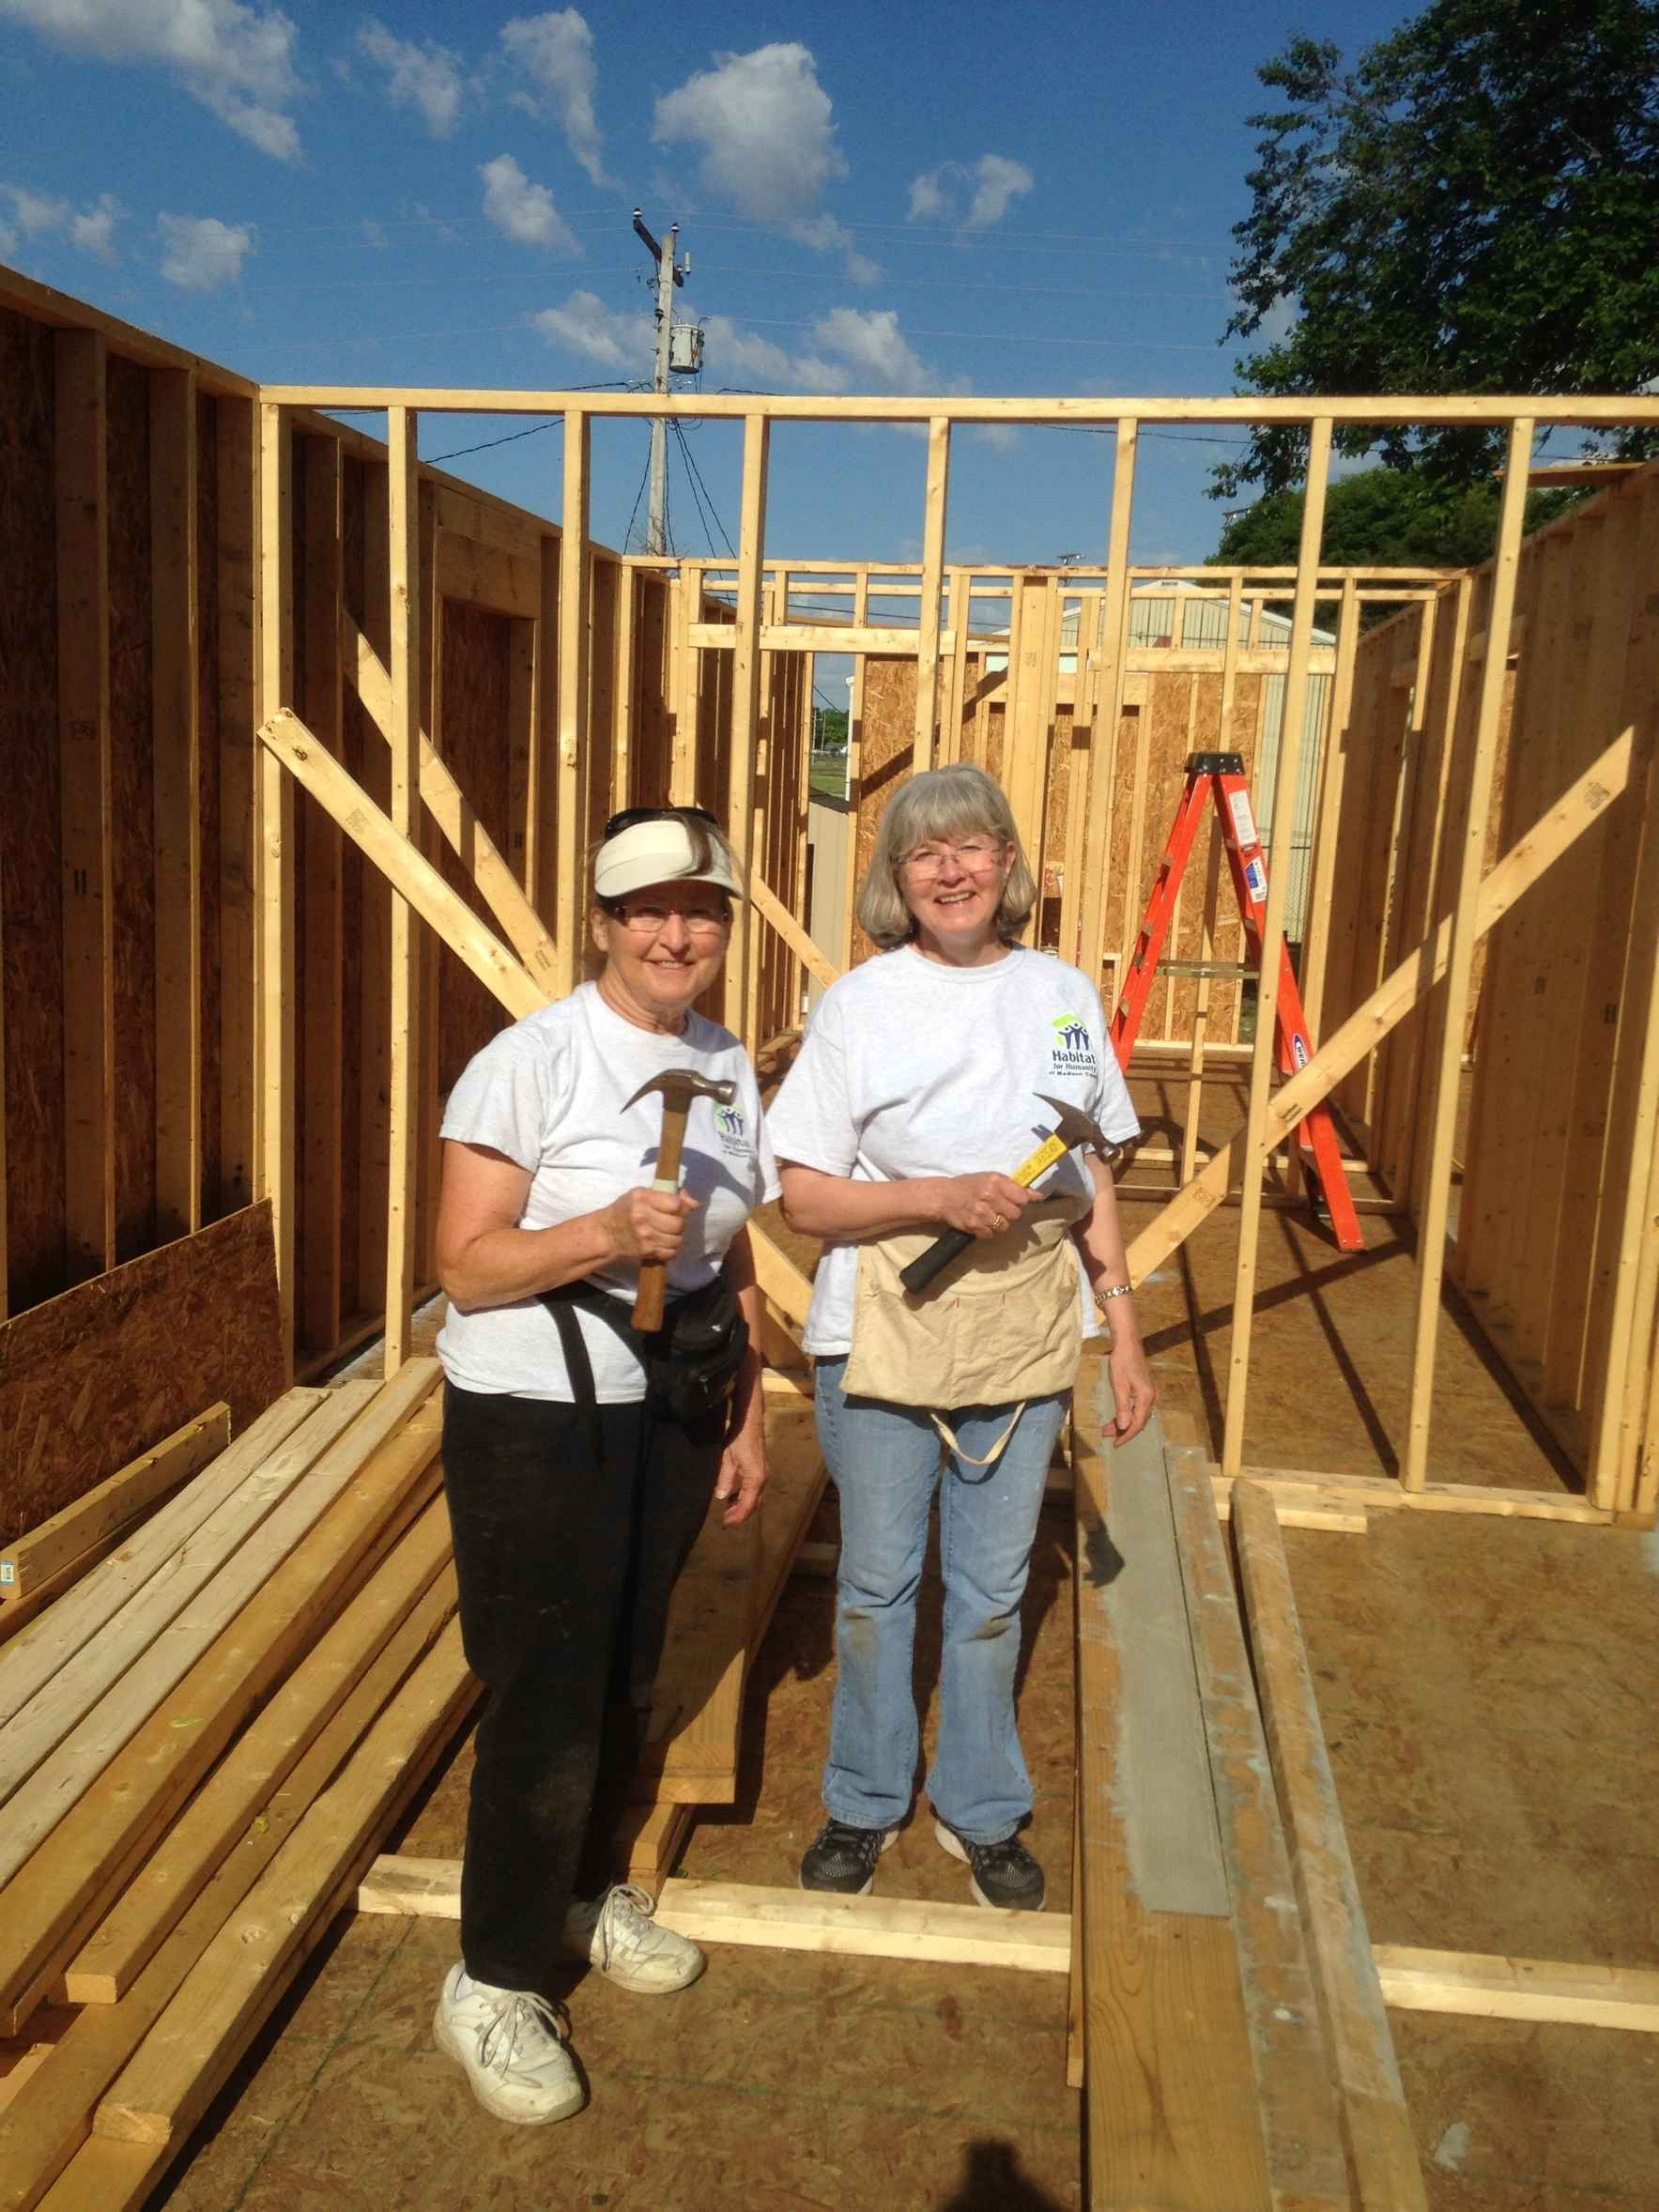 Give $10 on the 10th to build a home and a community! image